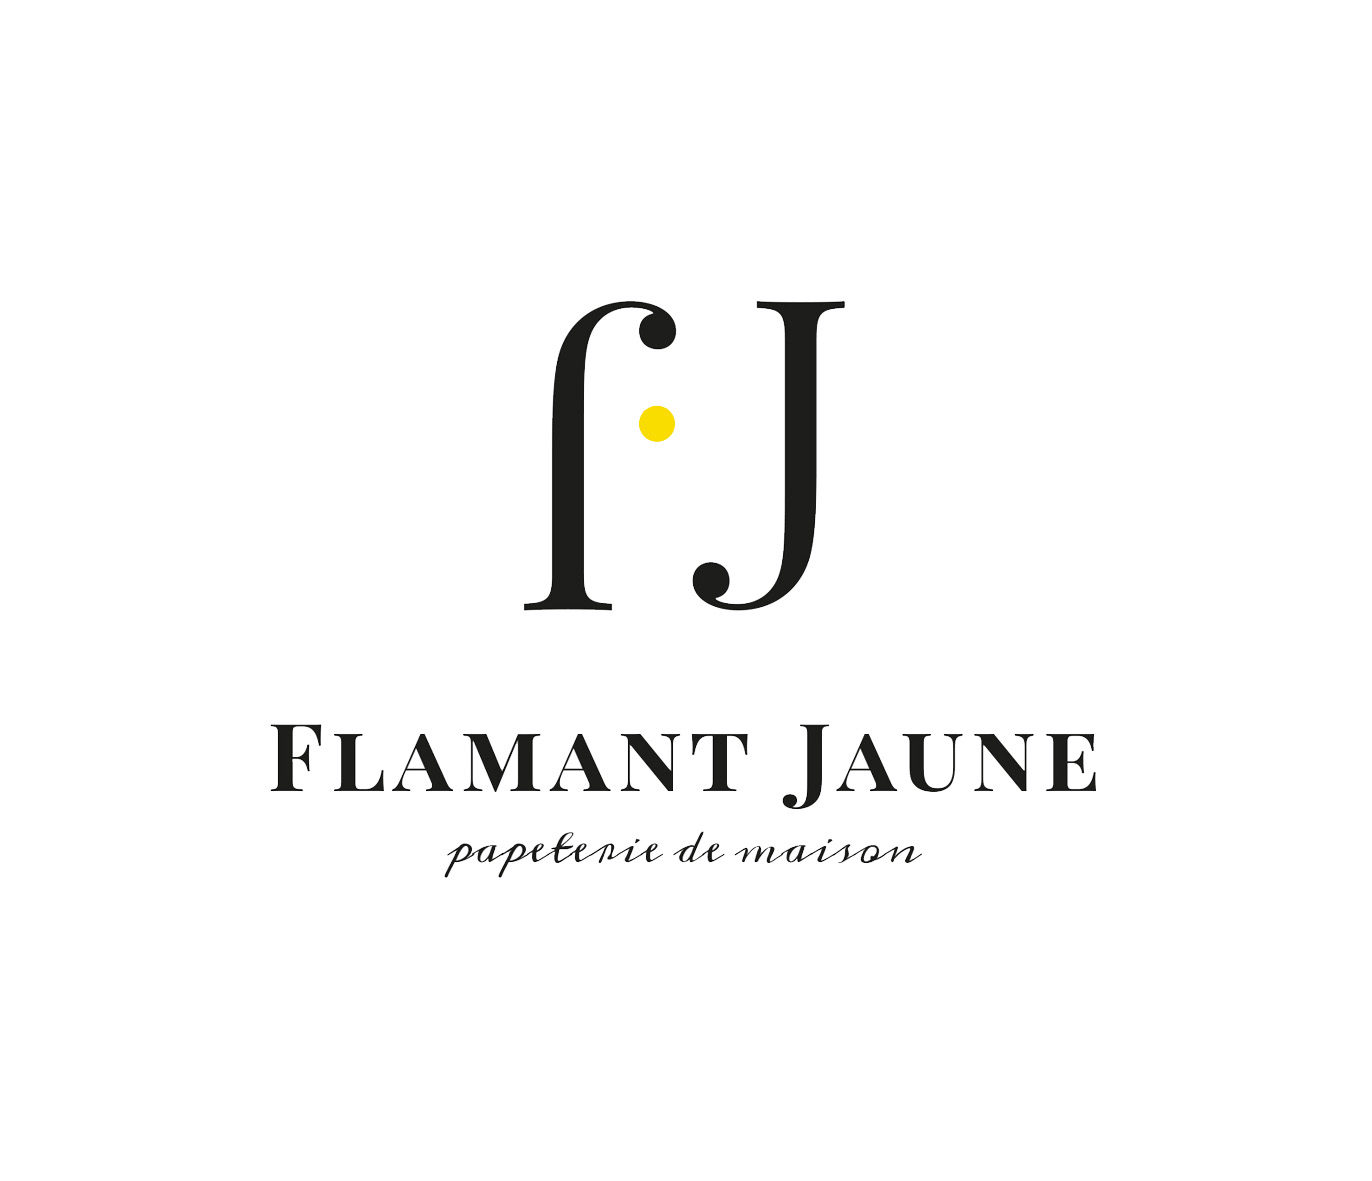 flamantjauneparis.com